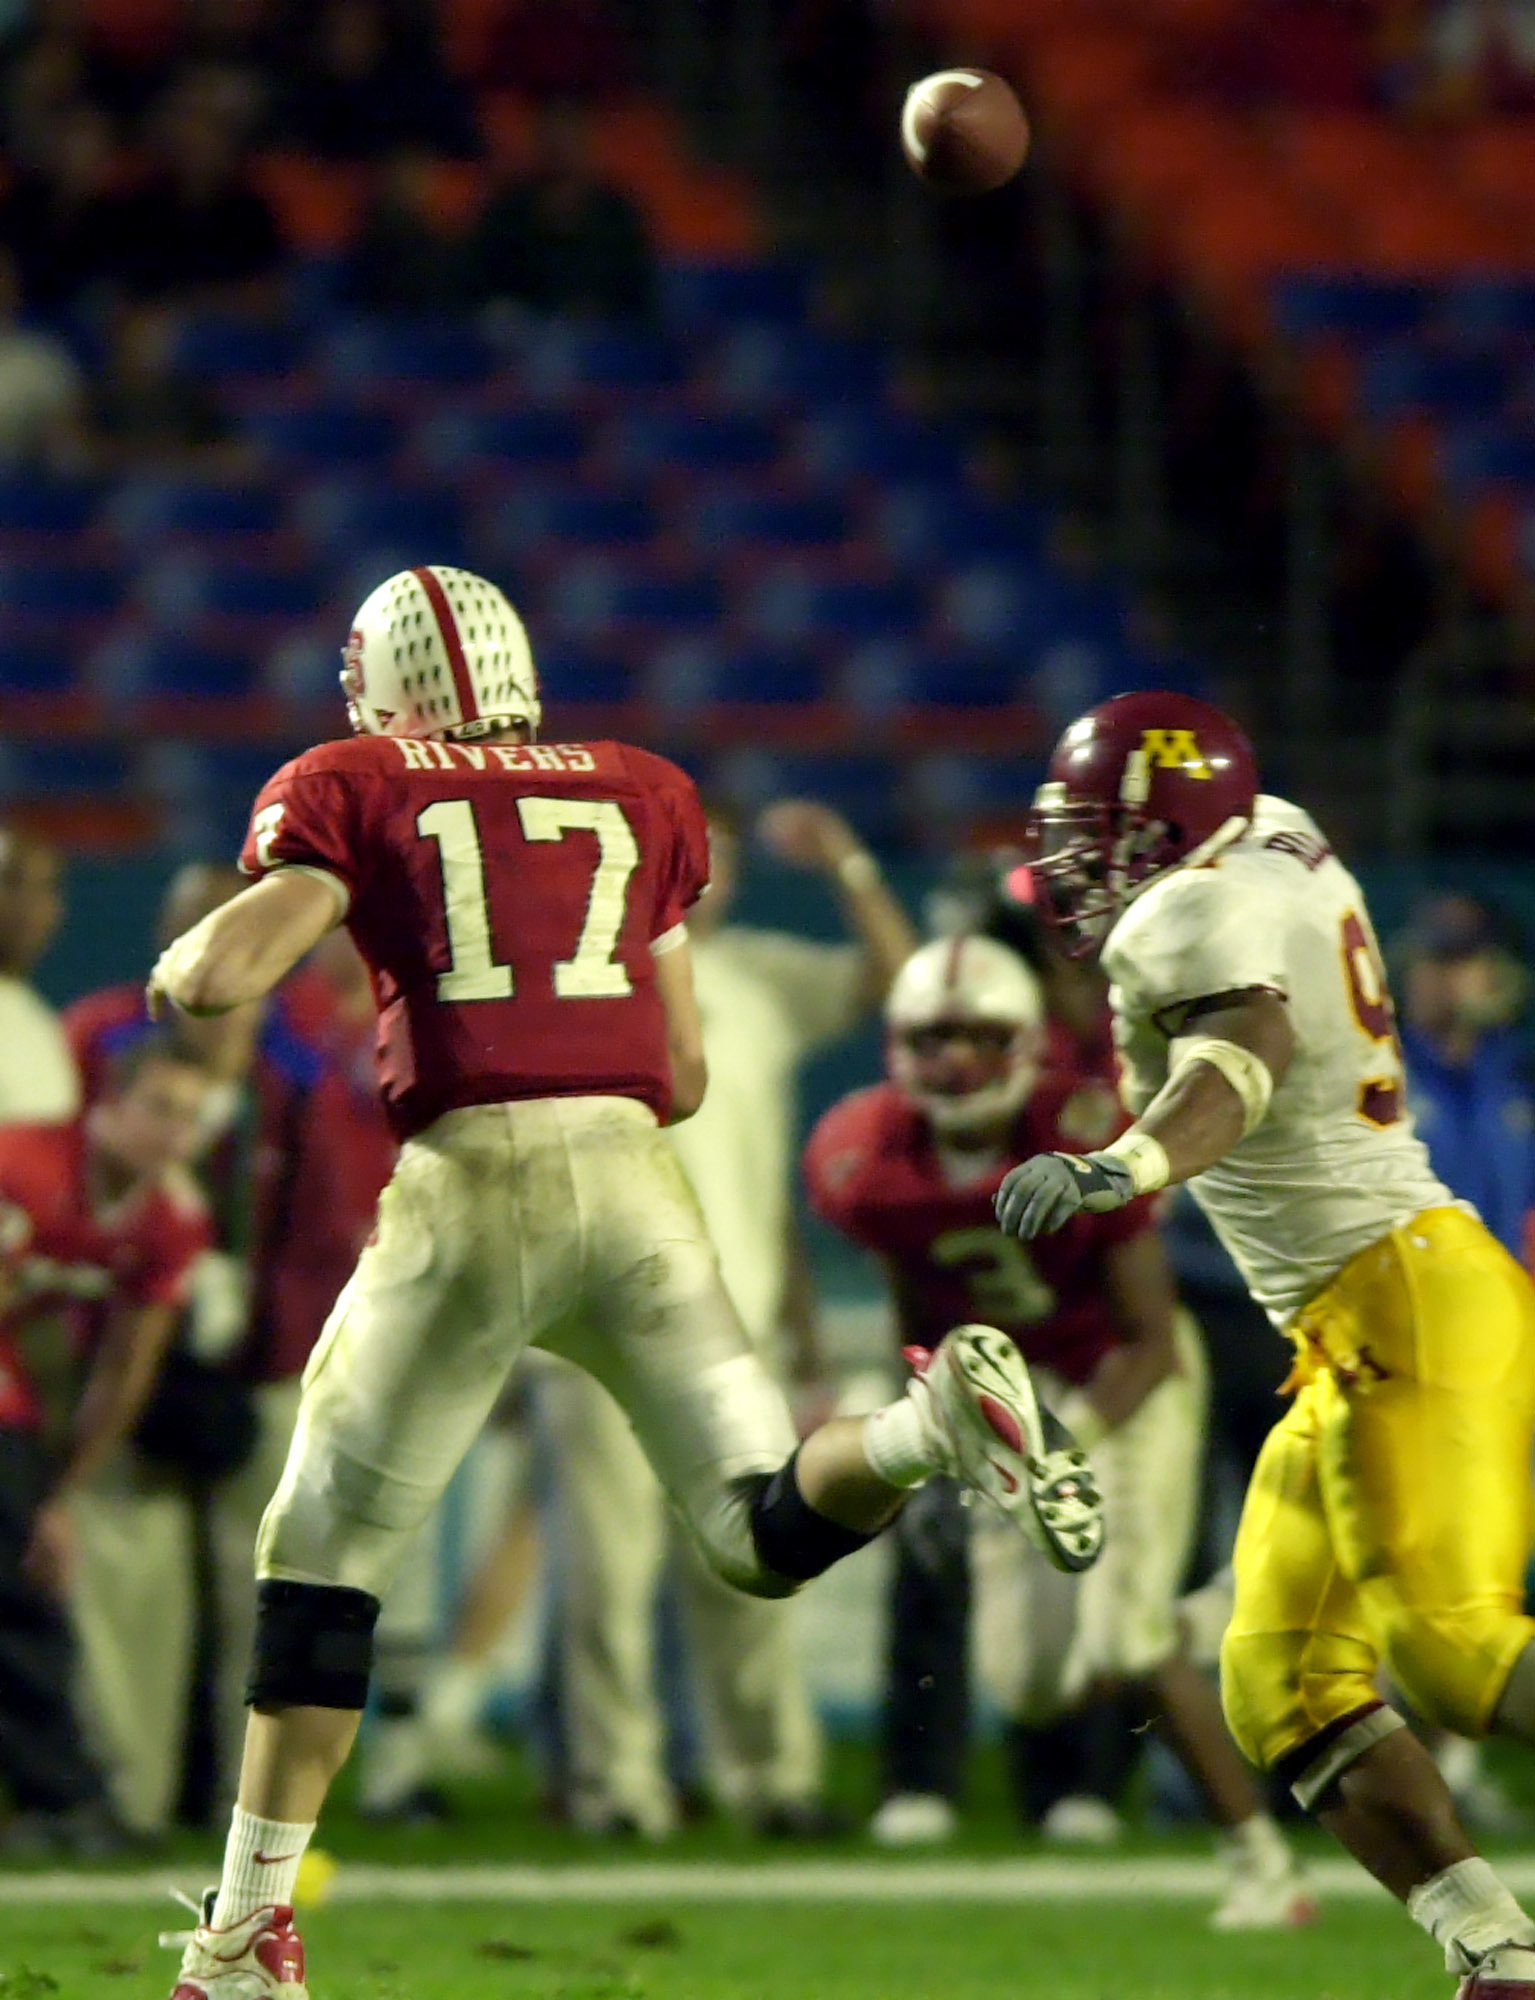 University of Minnesota vs North Carolina State Micron P.C.com bowl Thursday 12/28/00----- N.C State quaterback Philip Rivers 17 avoids the rush of Minnesota's Karon Riley completing a pass to his teamate Koren Robinson during the 4th quarter at Pro Play